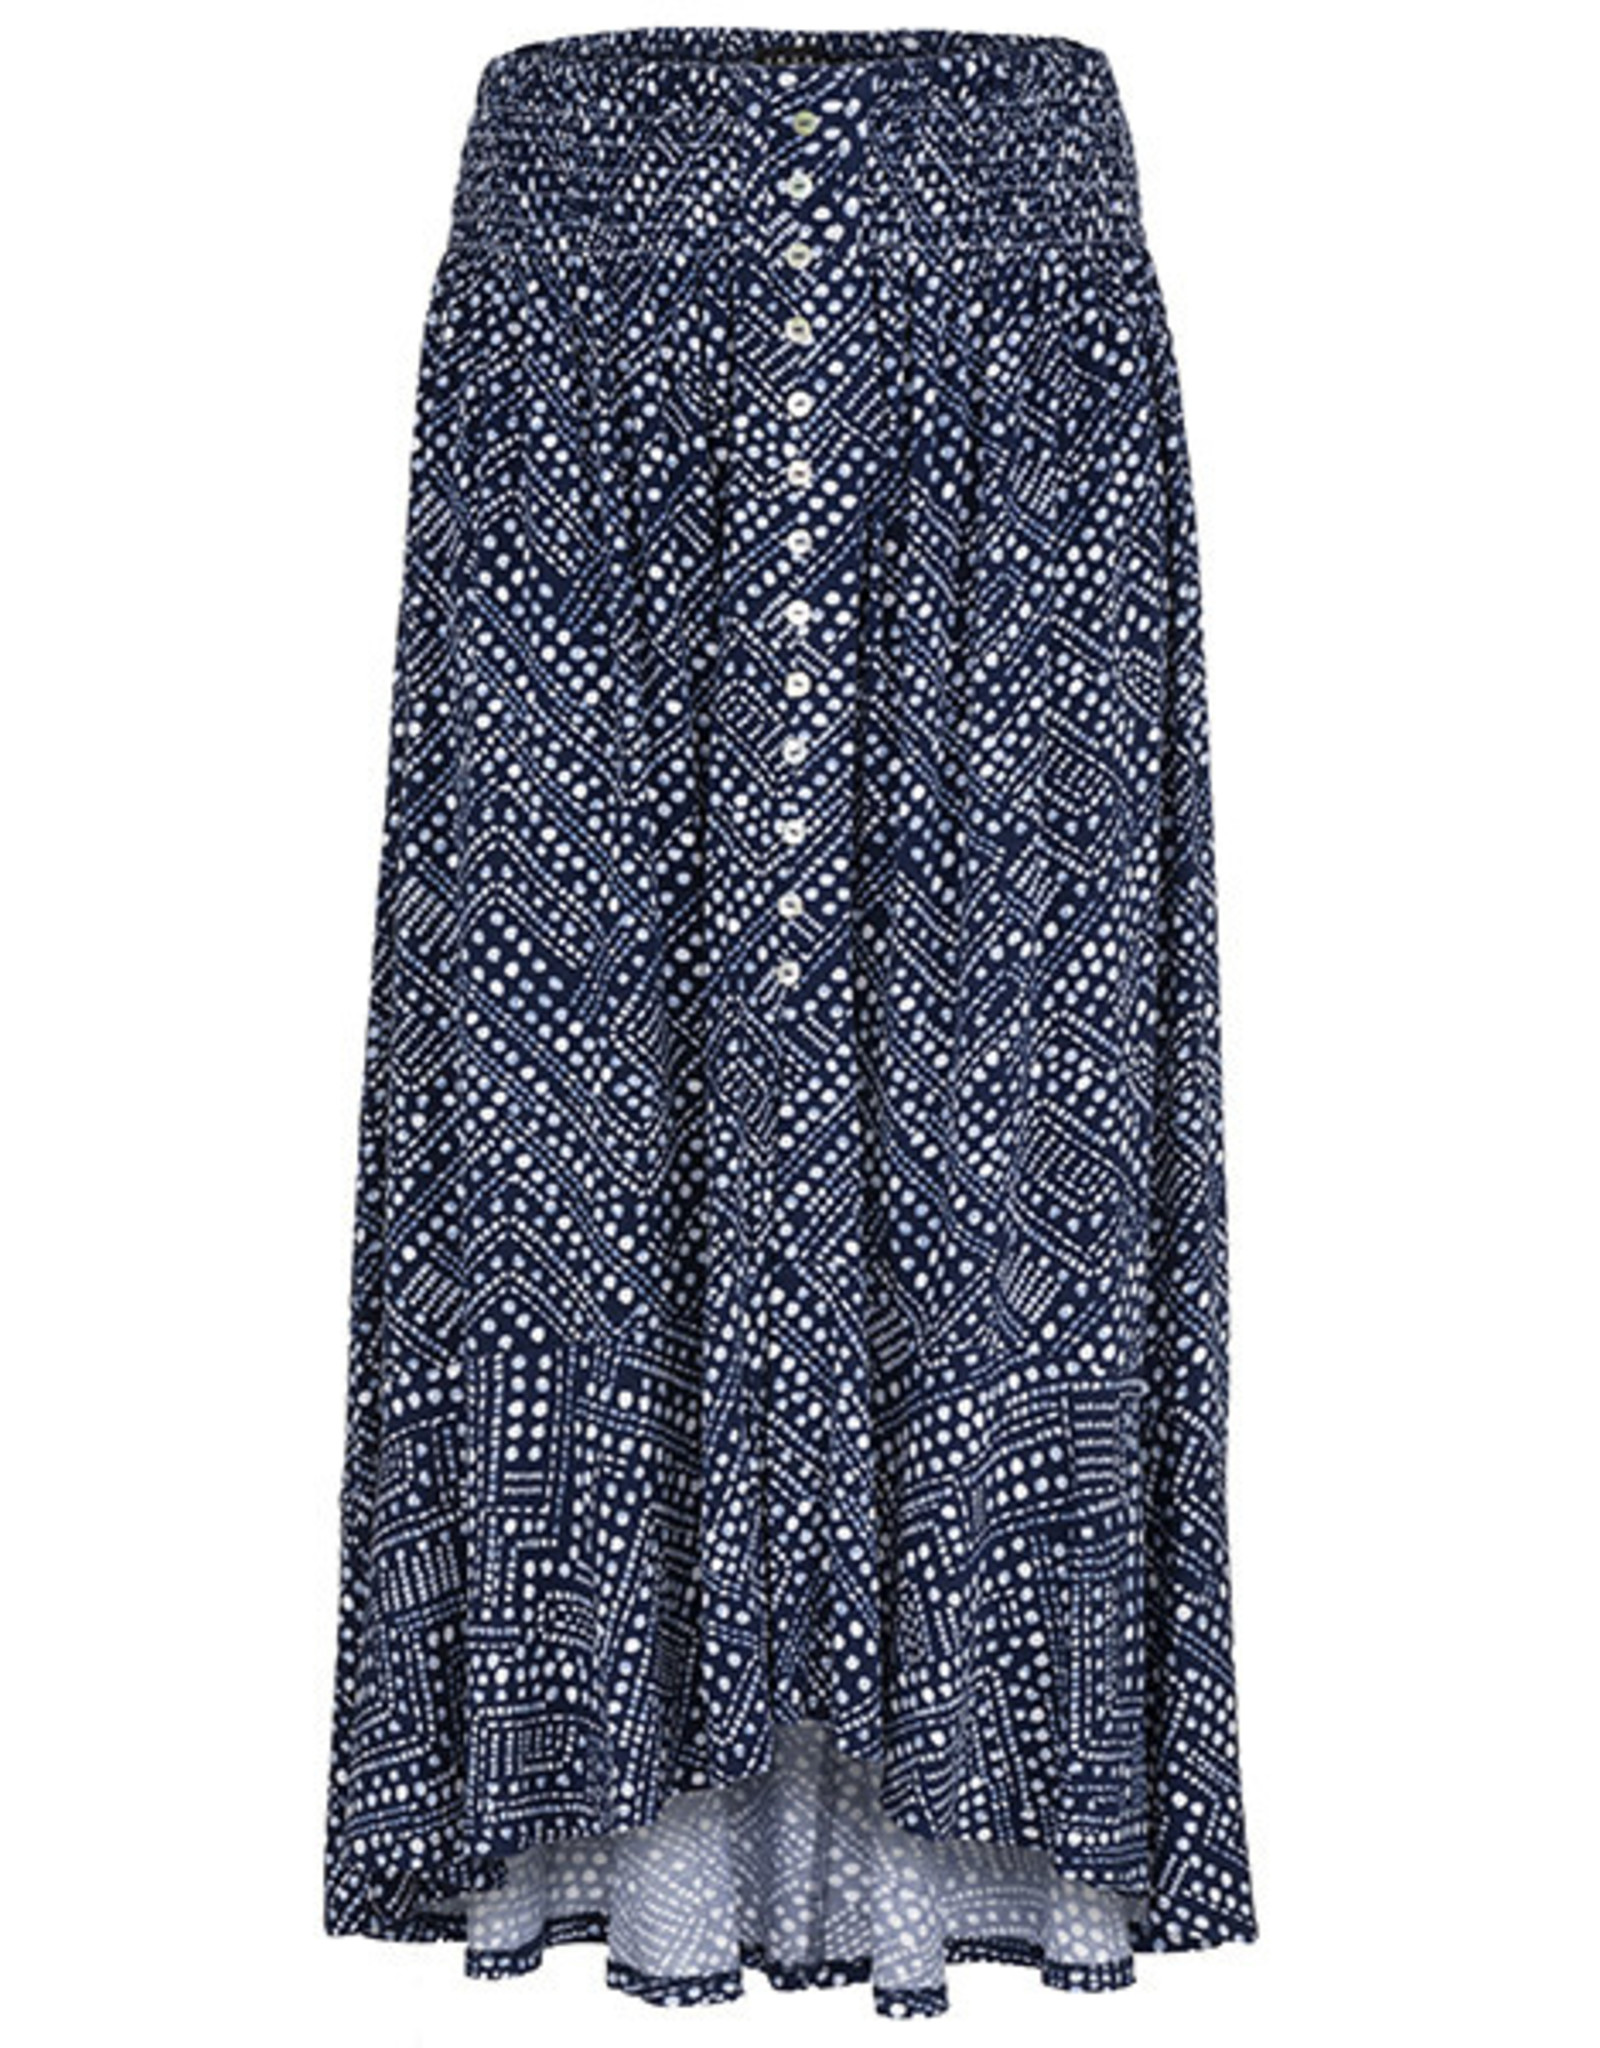 Tribal Tribal Pull On Skirt with Smocking